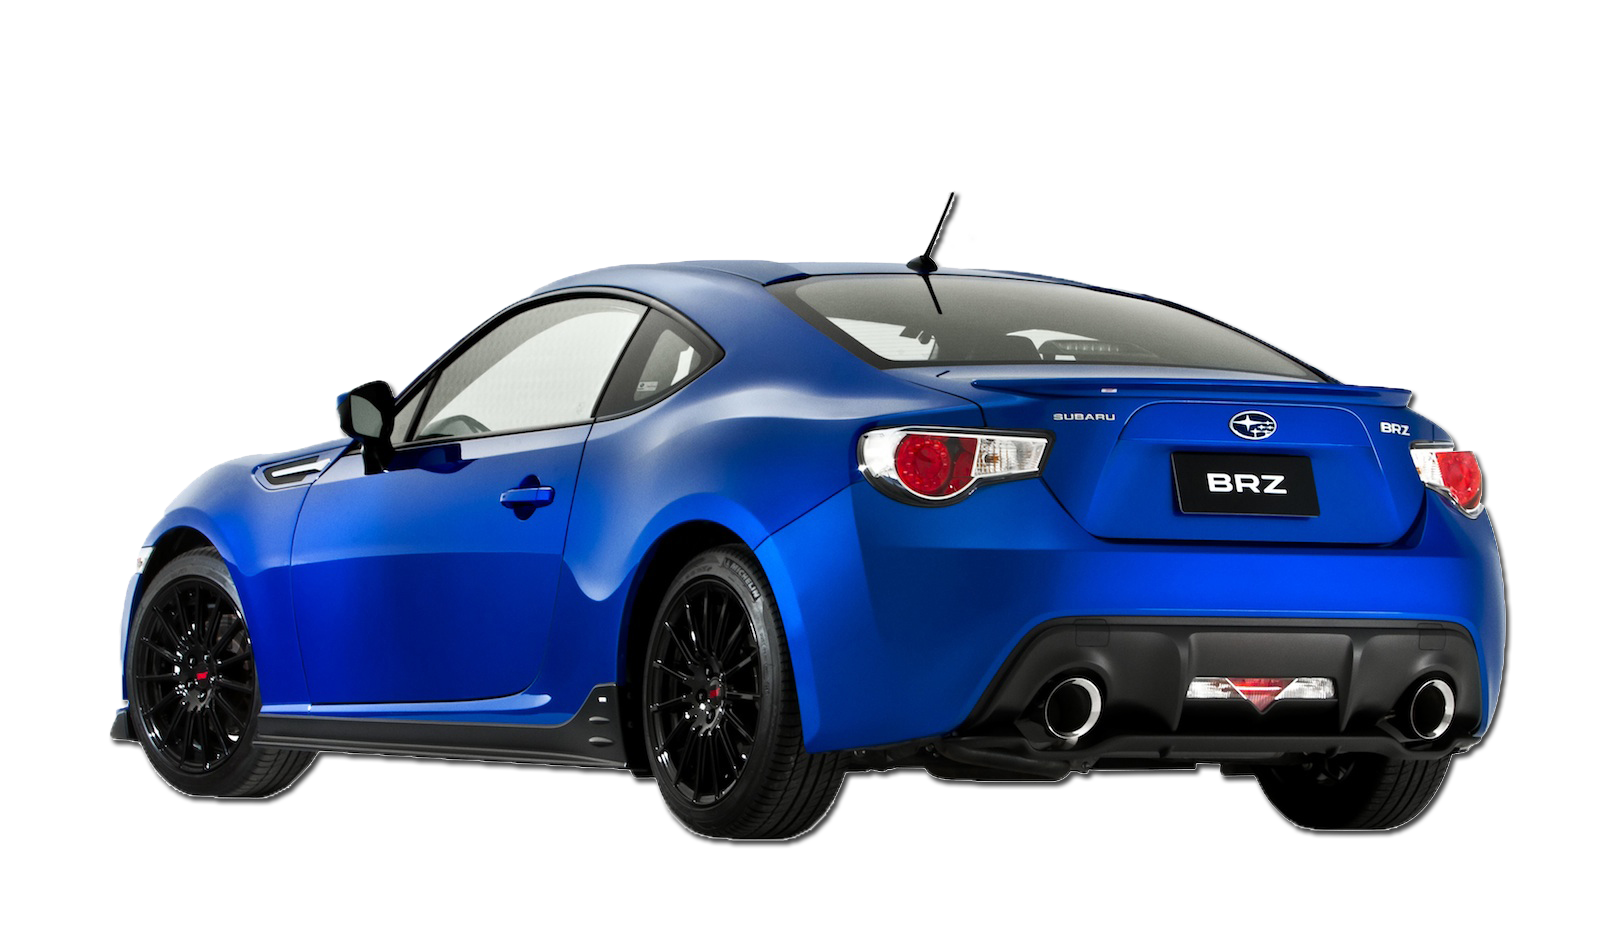 Subaru BRZ no background